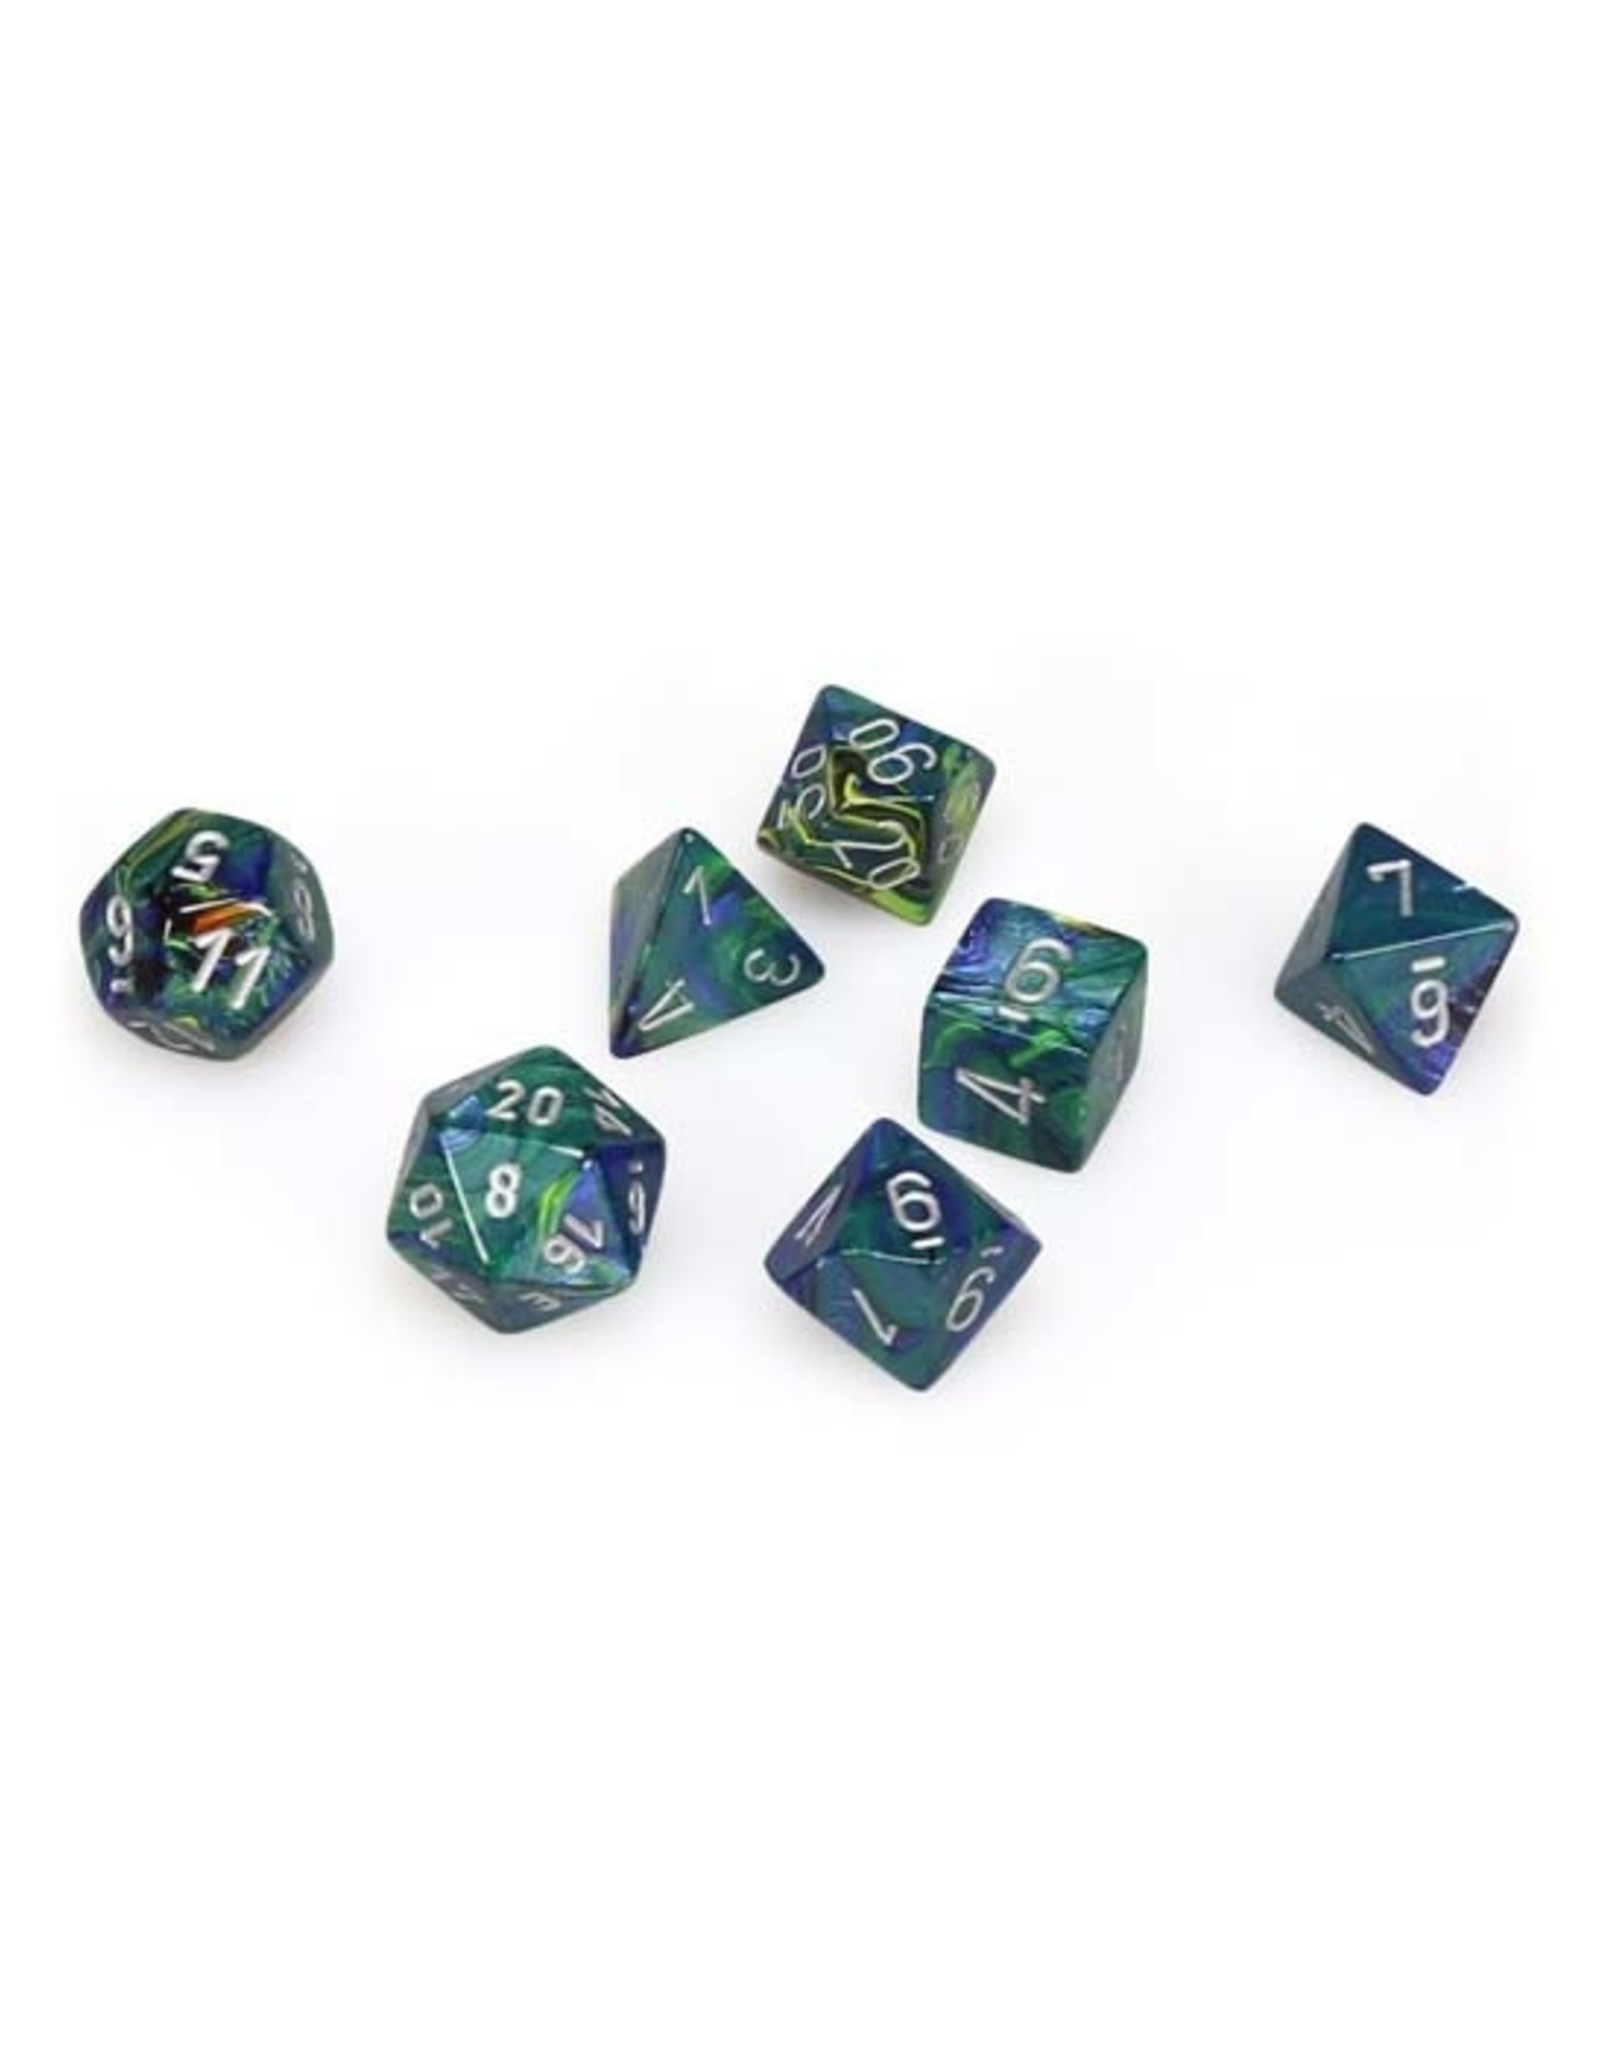 Chessex Chessex: Poly 7 Set - Festive - Green w/ Silver